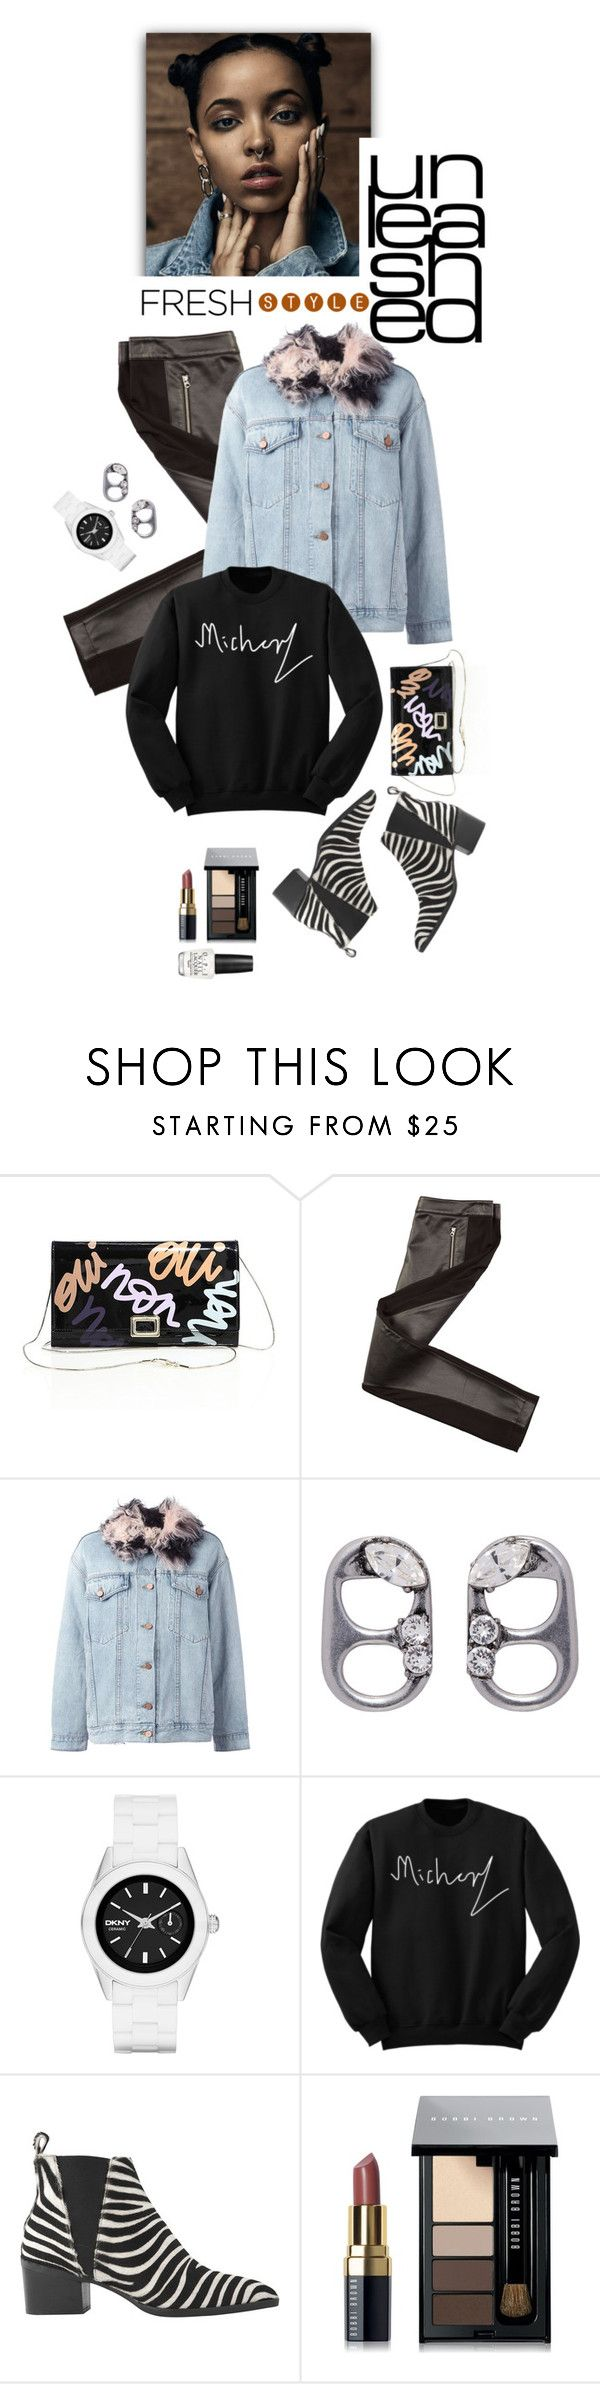 """FRESH STYLE"" by shortyluv718 ❤ liked on Polyvore featuring Roger Vivier, Armani Exchange, Alexander Wang, Marc Jacobs, DKNY, Whistles, Bobbi Brown Cosmetics, OPI, booties and animalprints"